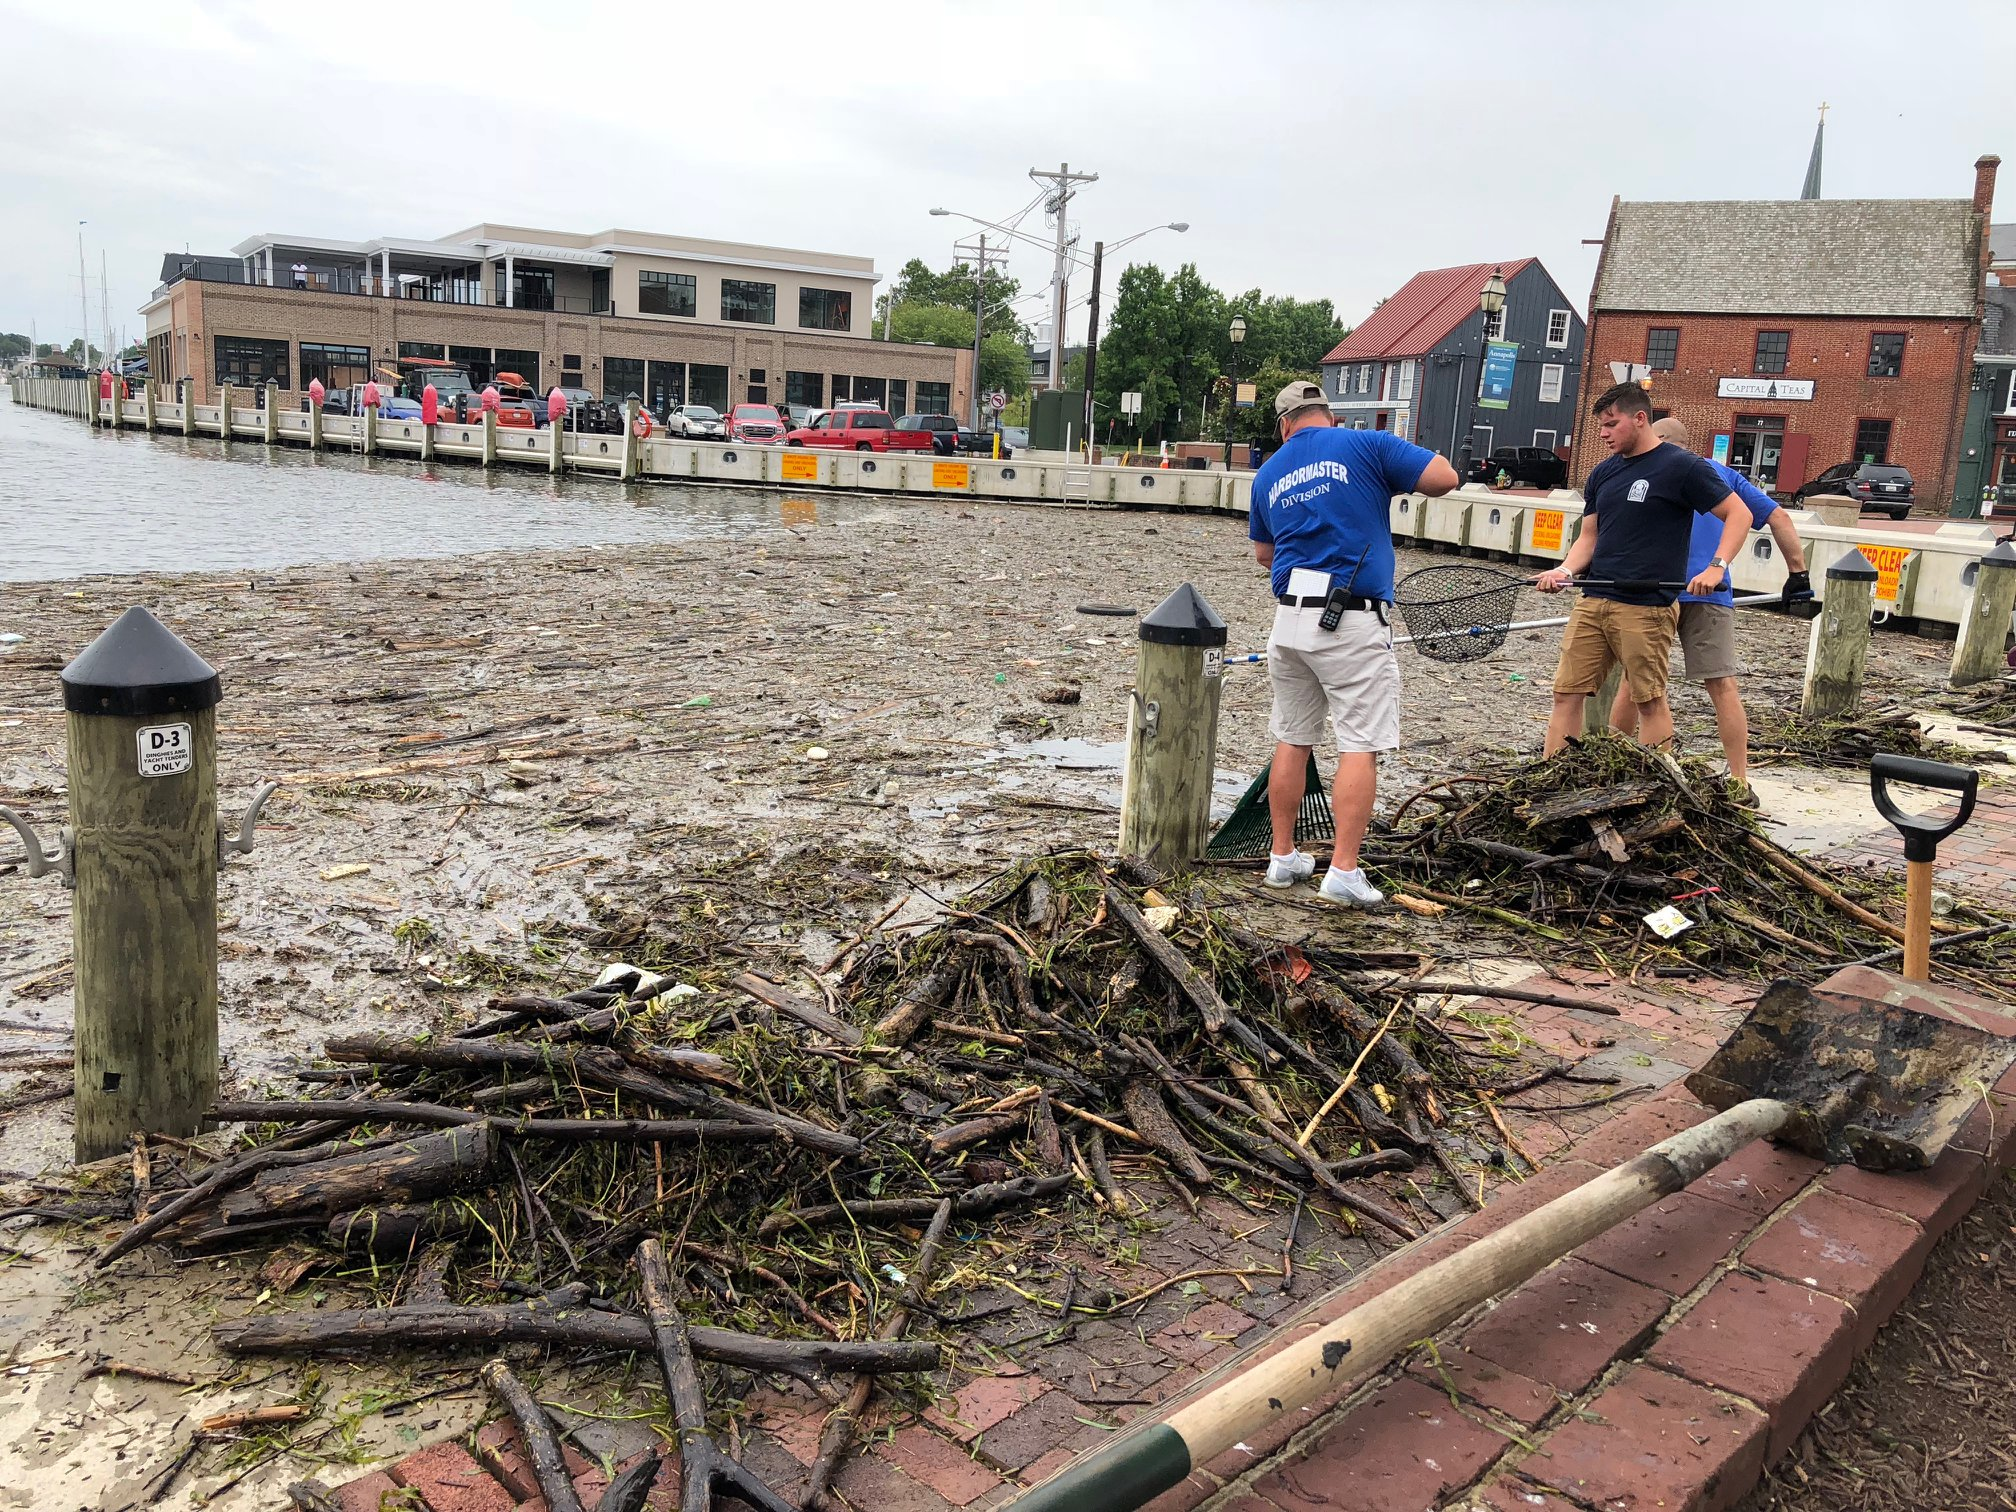 Annapolis City Dock (aka Ego Alley), full of debris from the Conowingo Dam lock opening. Out in the Bay, boaters must thread through hazardous debris fields of trees, tires, truck liners, and furniture. One would think they could filter this crap out but the flow of water went through the spill gates at more than 300,000 cubic feet per second. A mess for sure.